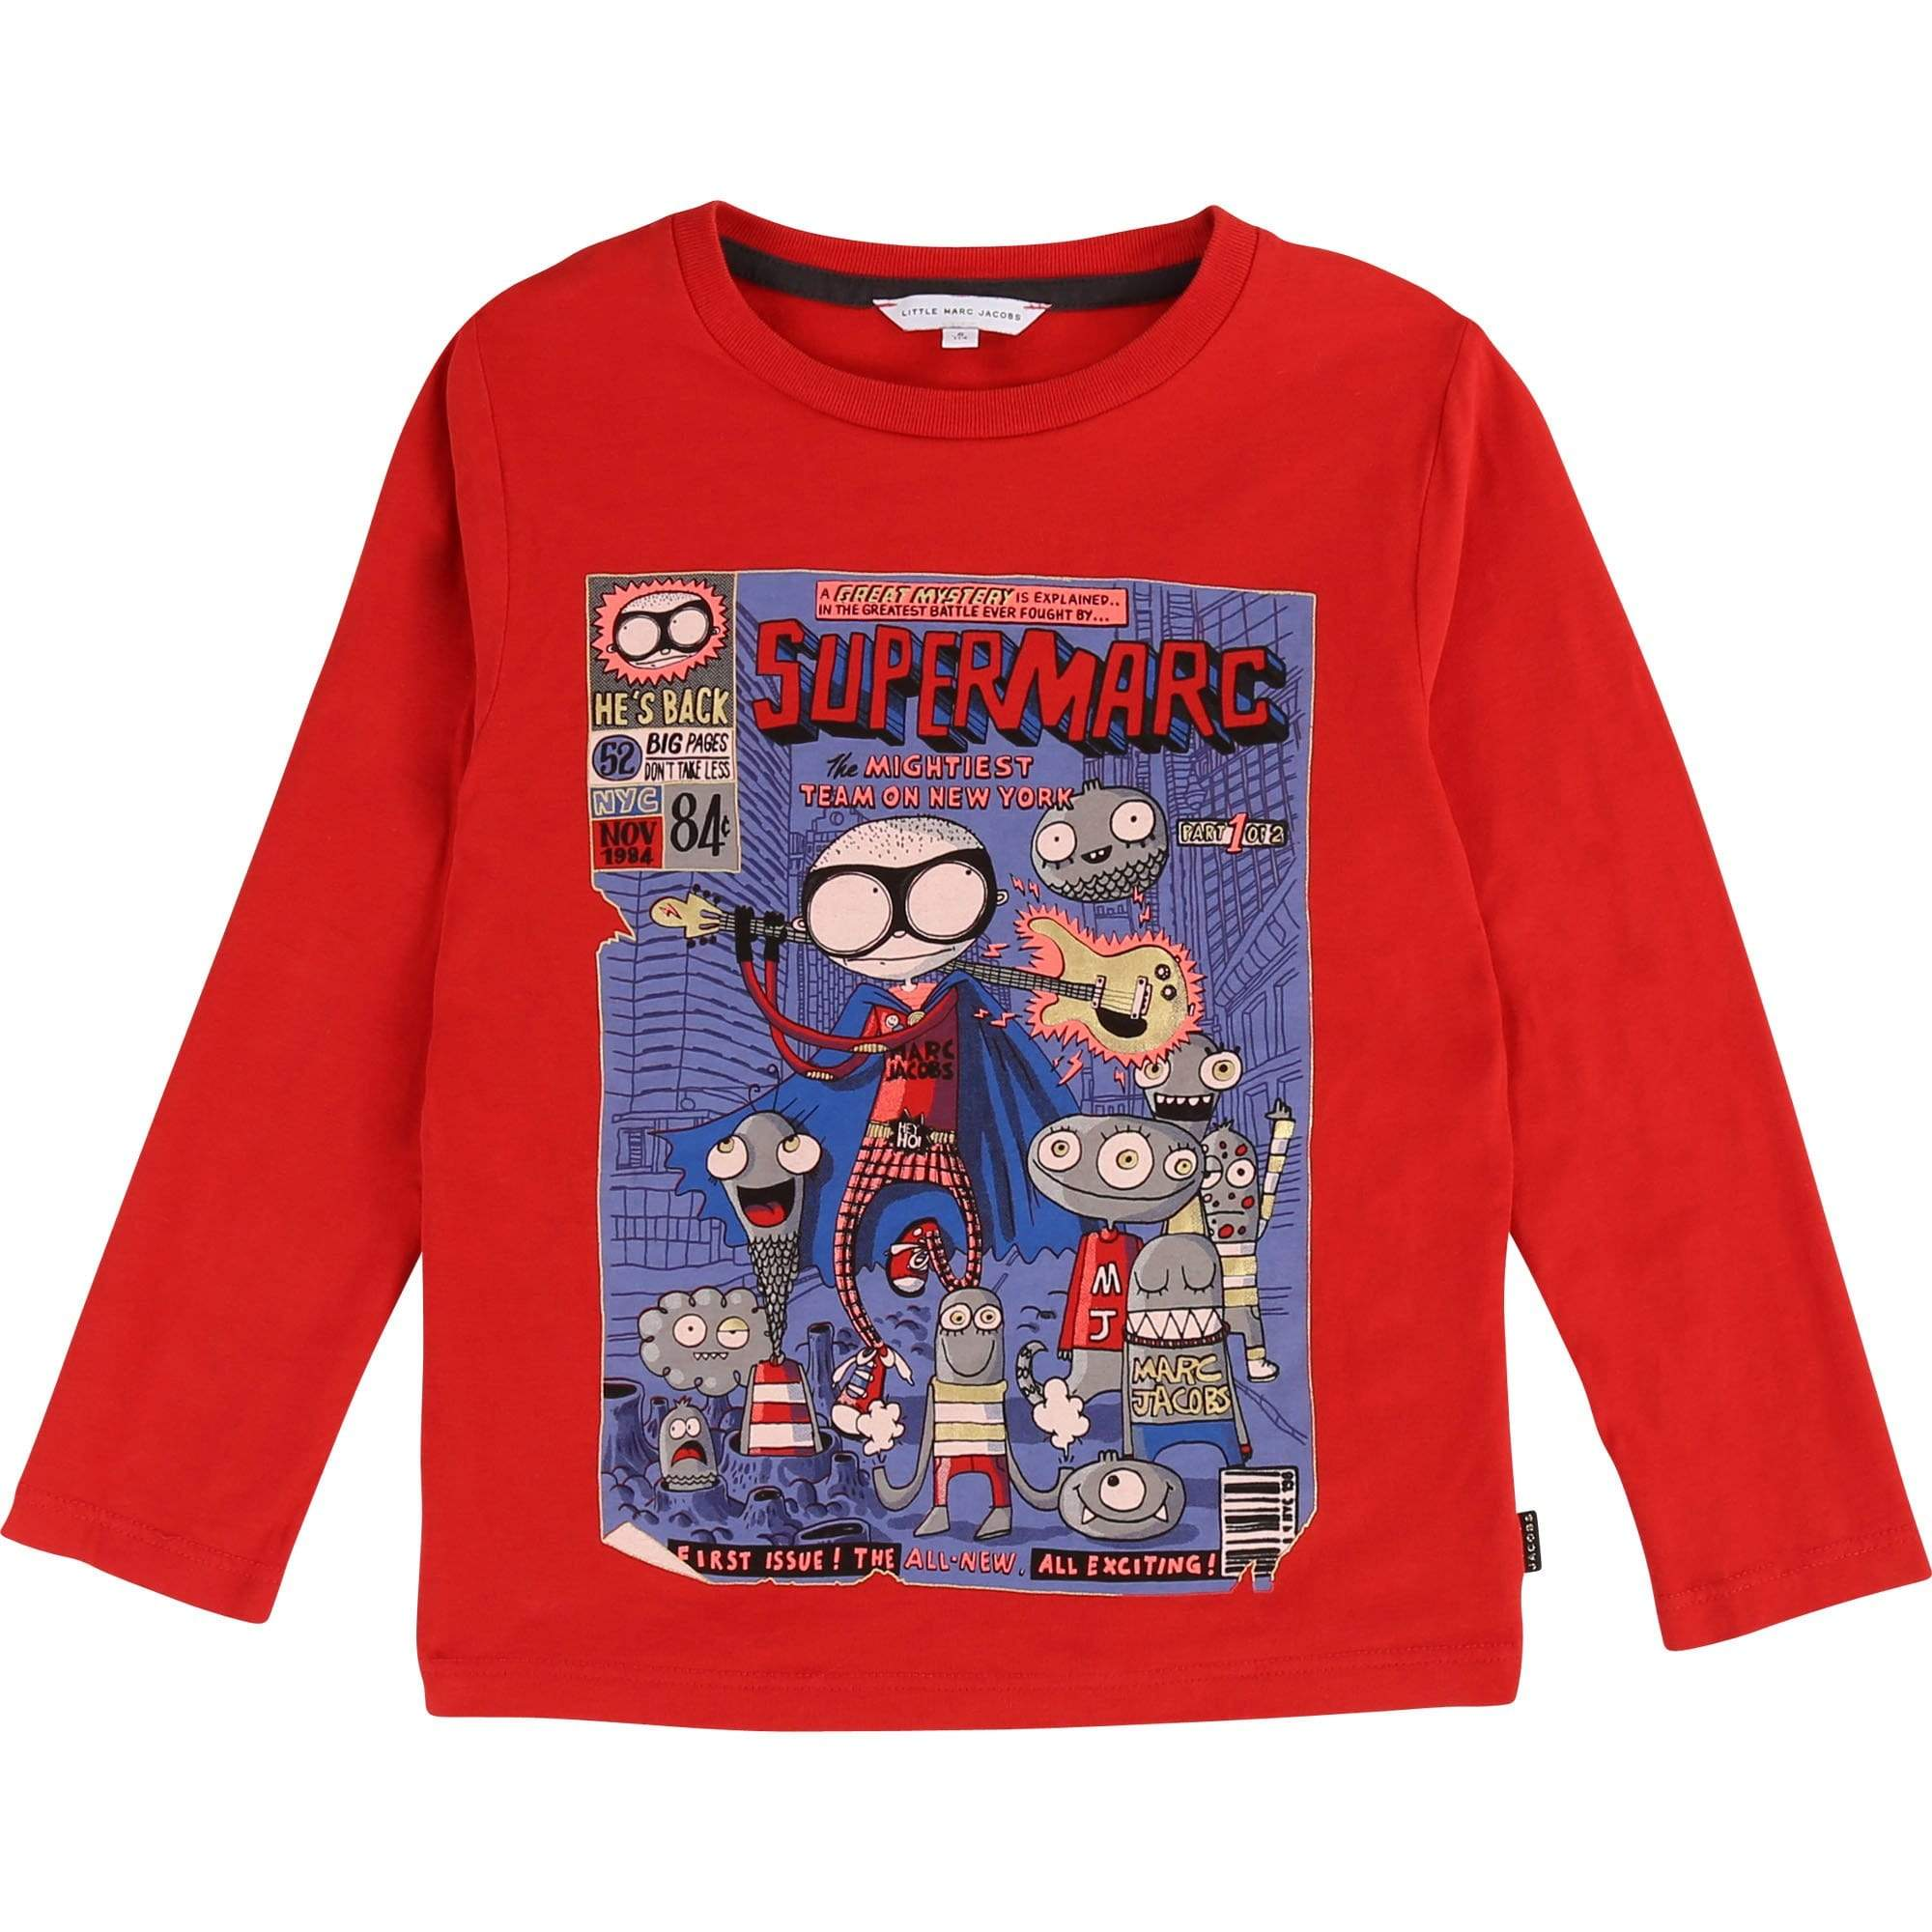 "Little Marc Jacobs Chandails 4Y / Rouge Tee-shirt en jersey coton avec illustration ""Comics"" et raiser tissé MARC JACOBS noir."